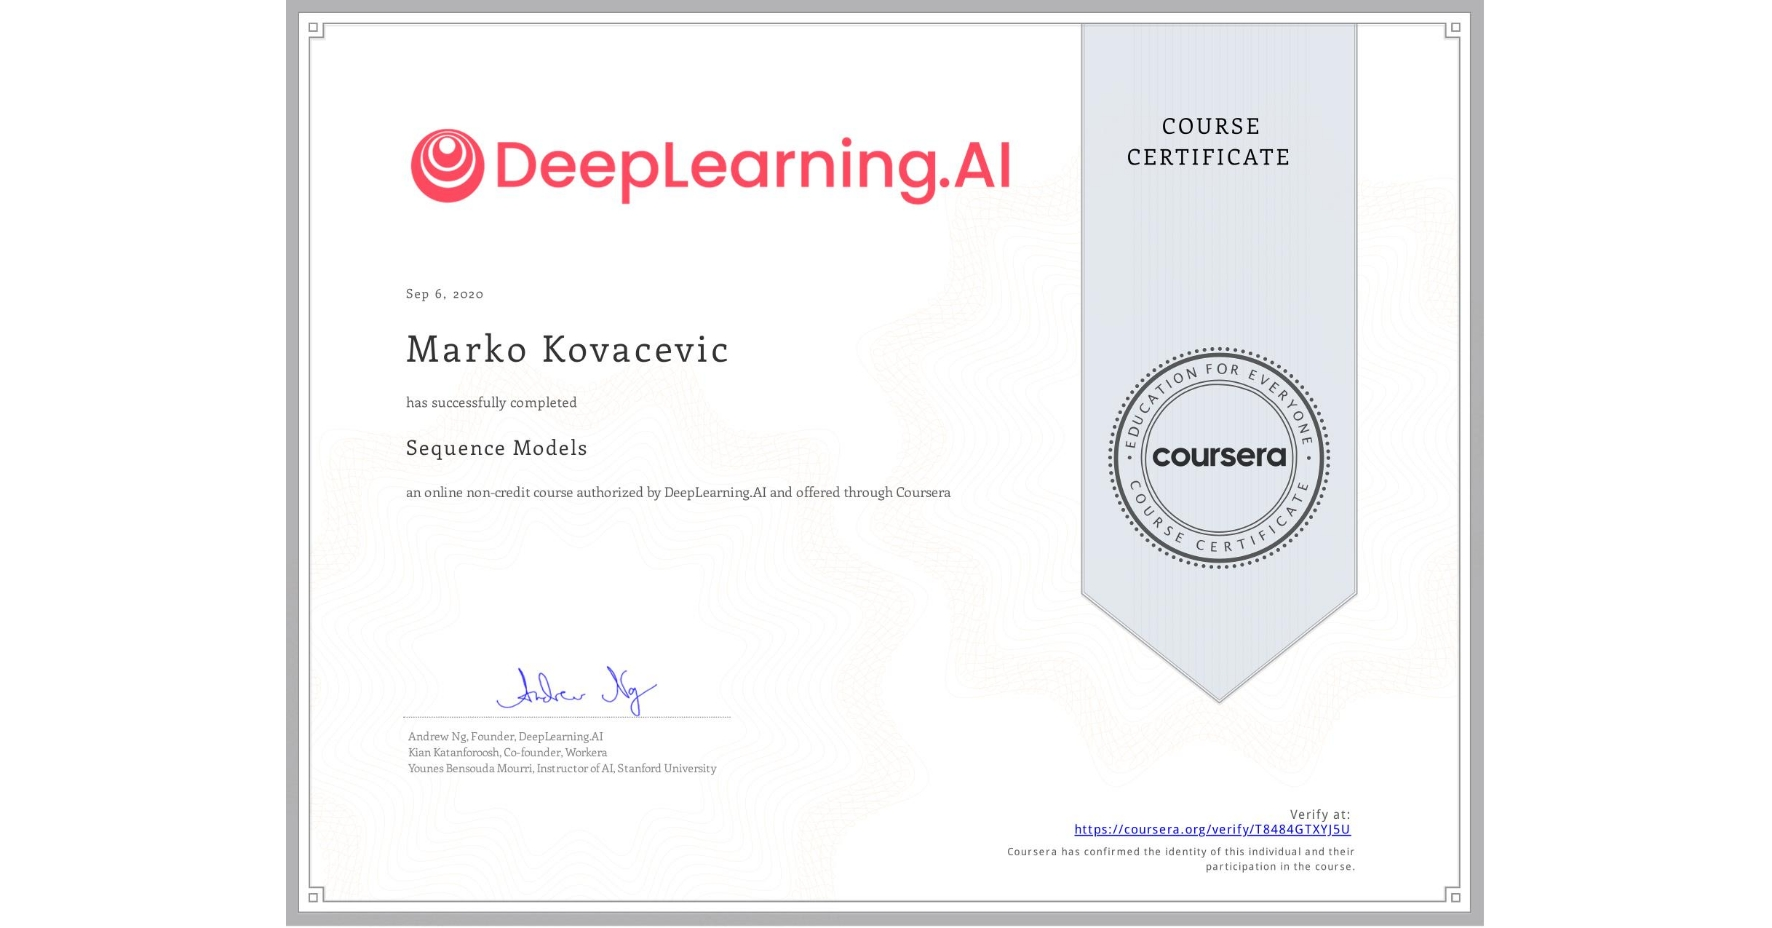 View certificate for Marko Kovacevic, Sequence Models, an online non-credit course authorized by DeepLearning.AI and offered through Coursera